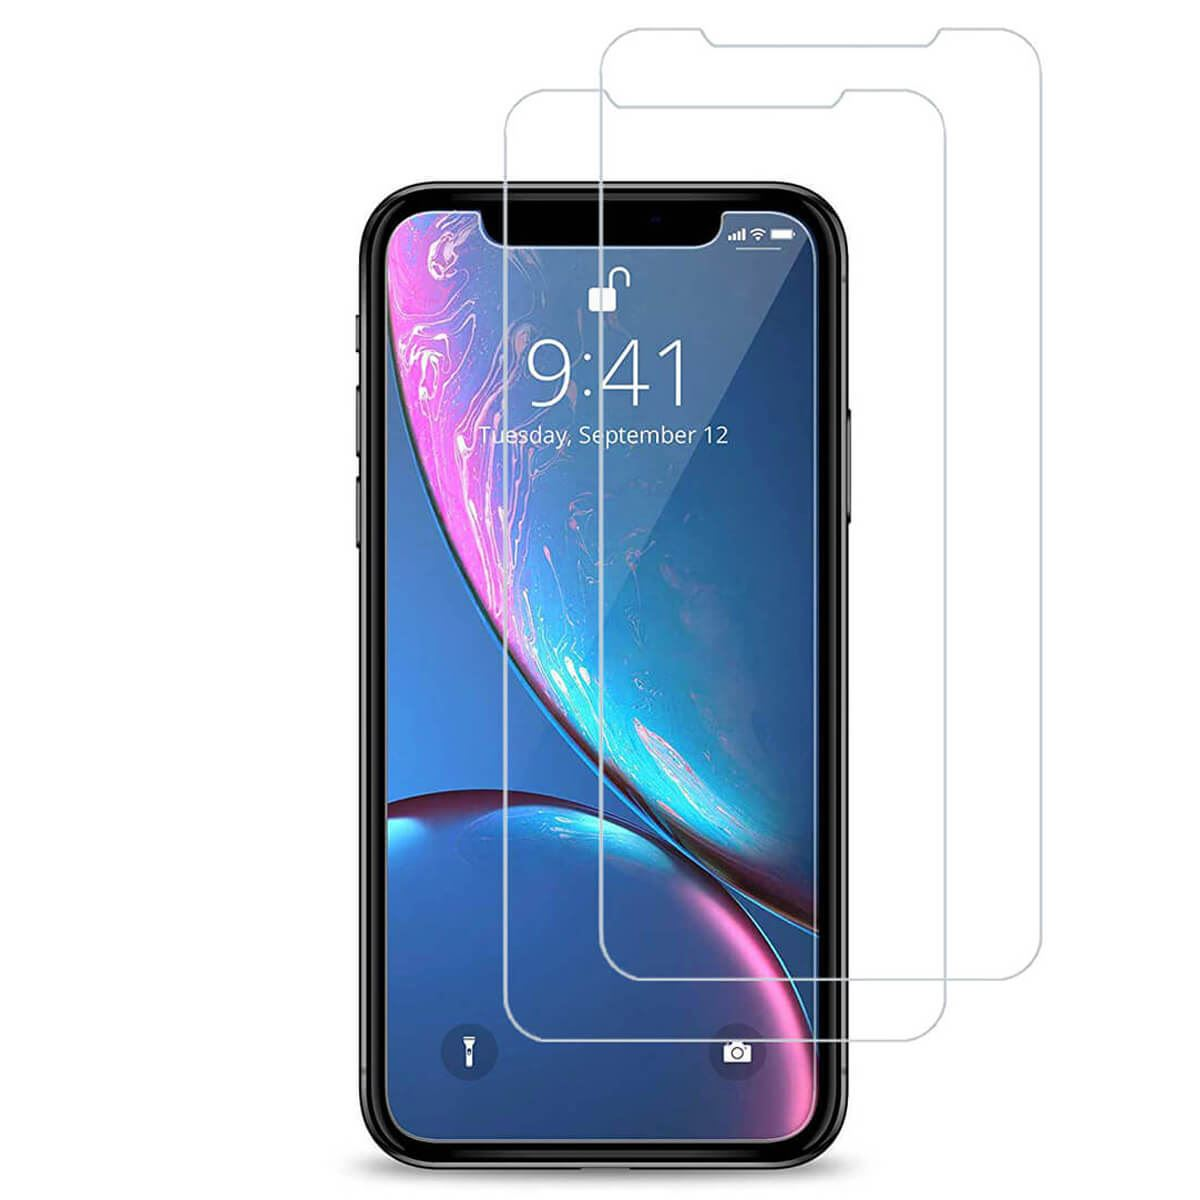 Tempered-Glass-Film-Screen-Protector-For-iPhone-12-Pro-Max-Mini-XR-XS-Max-8-7-6s thumbnail 67